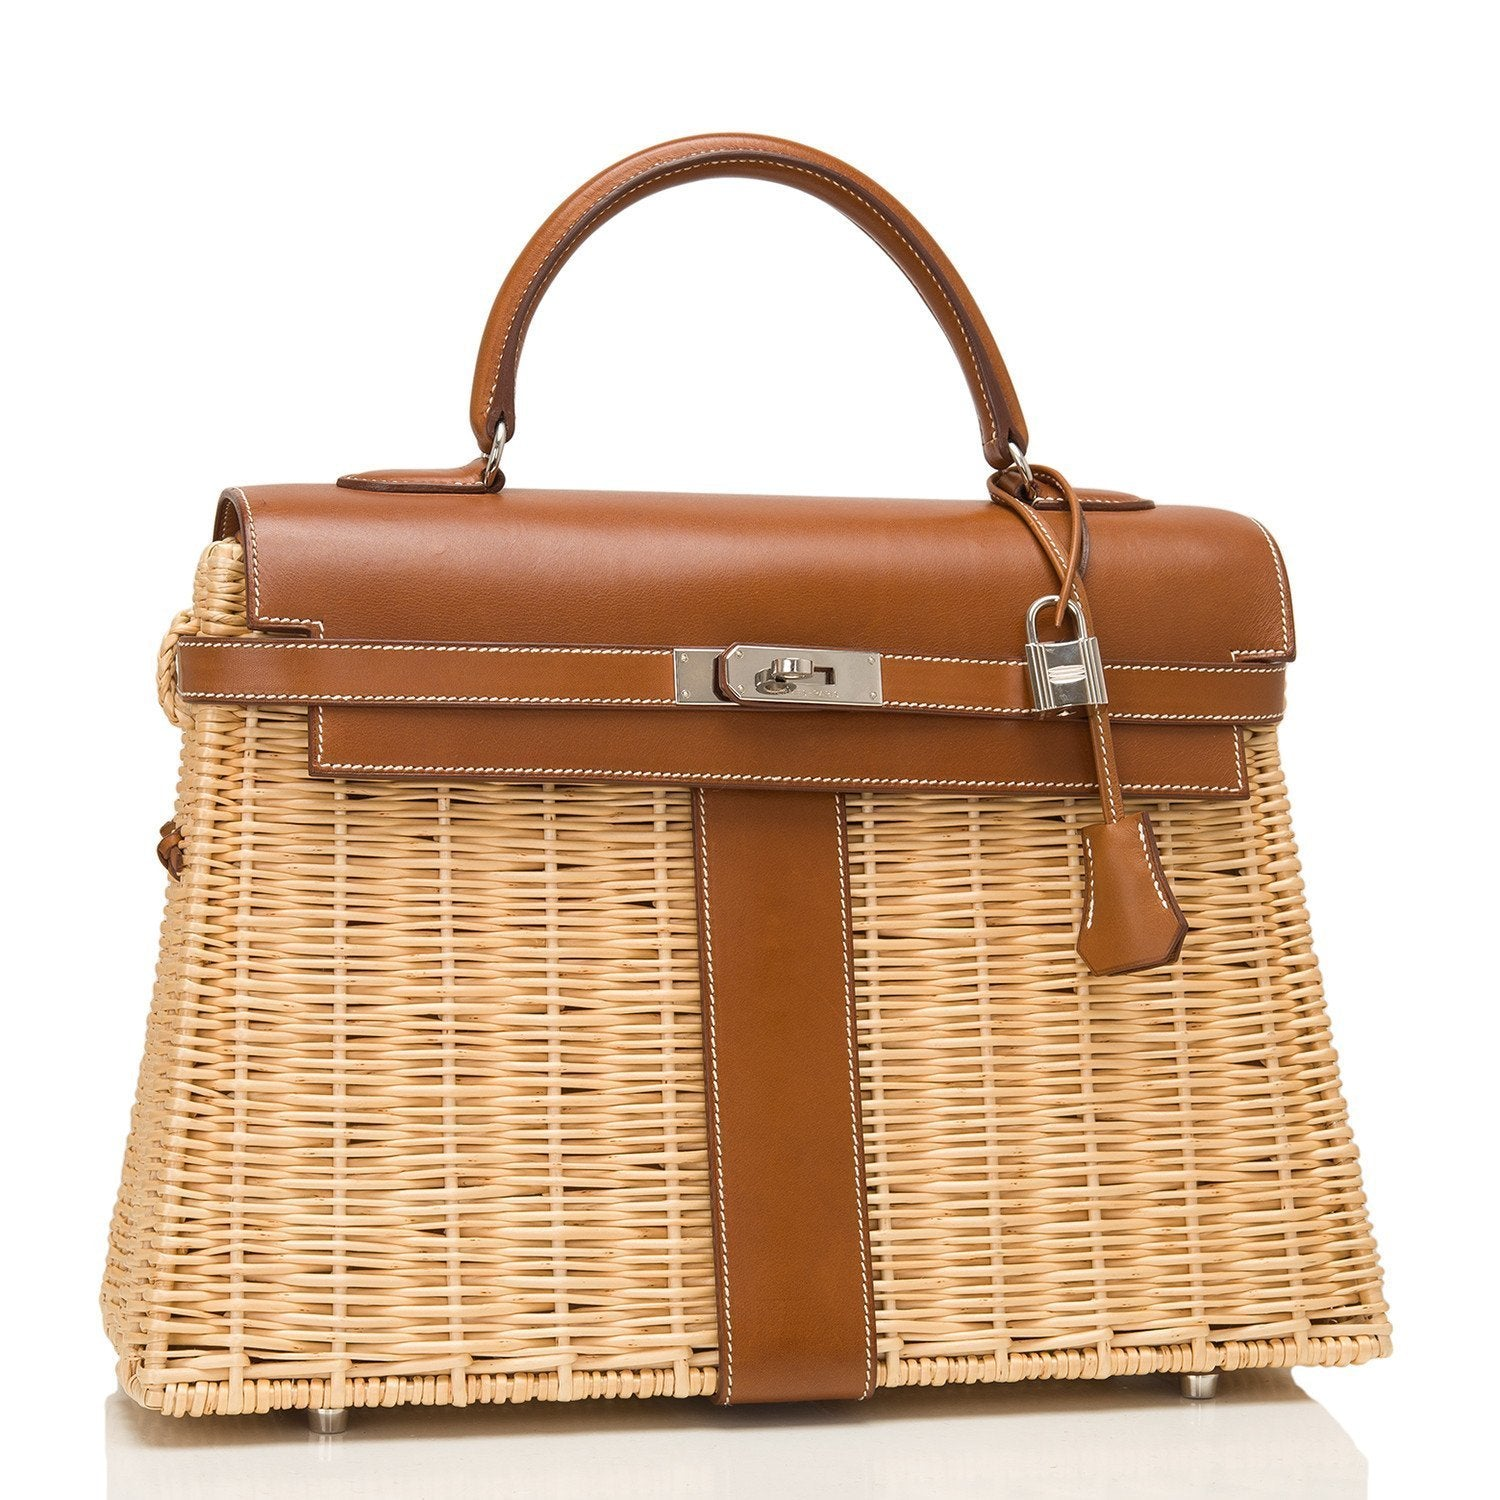 4190f85bbc Hermes Wicker and Barenia Leather Kelly Picnic Bag 35cm PHW – Madison  Avenue Couture